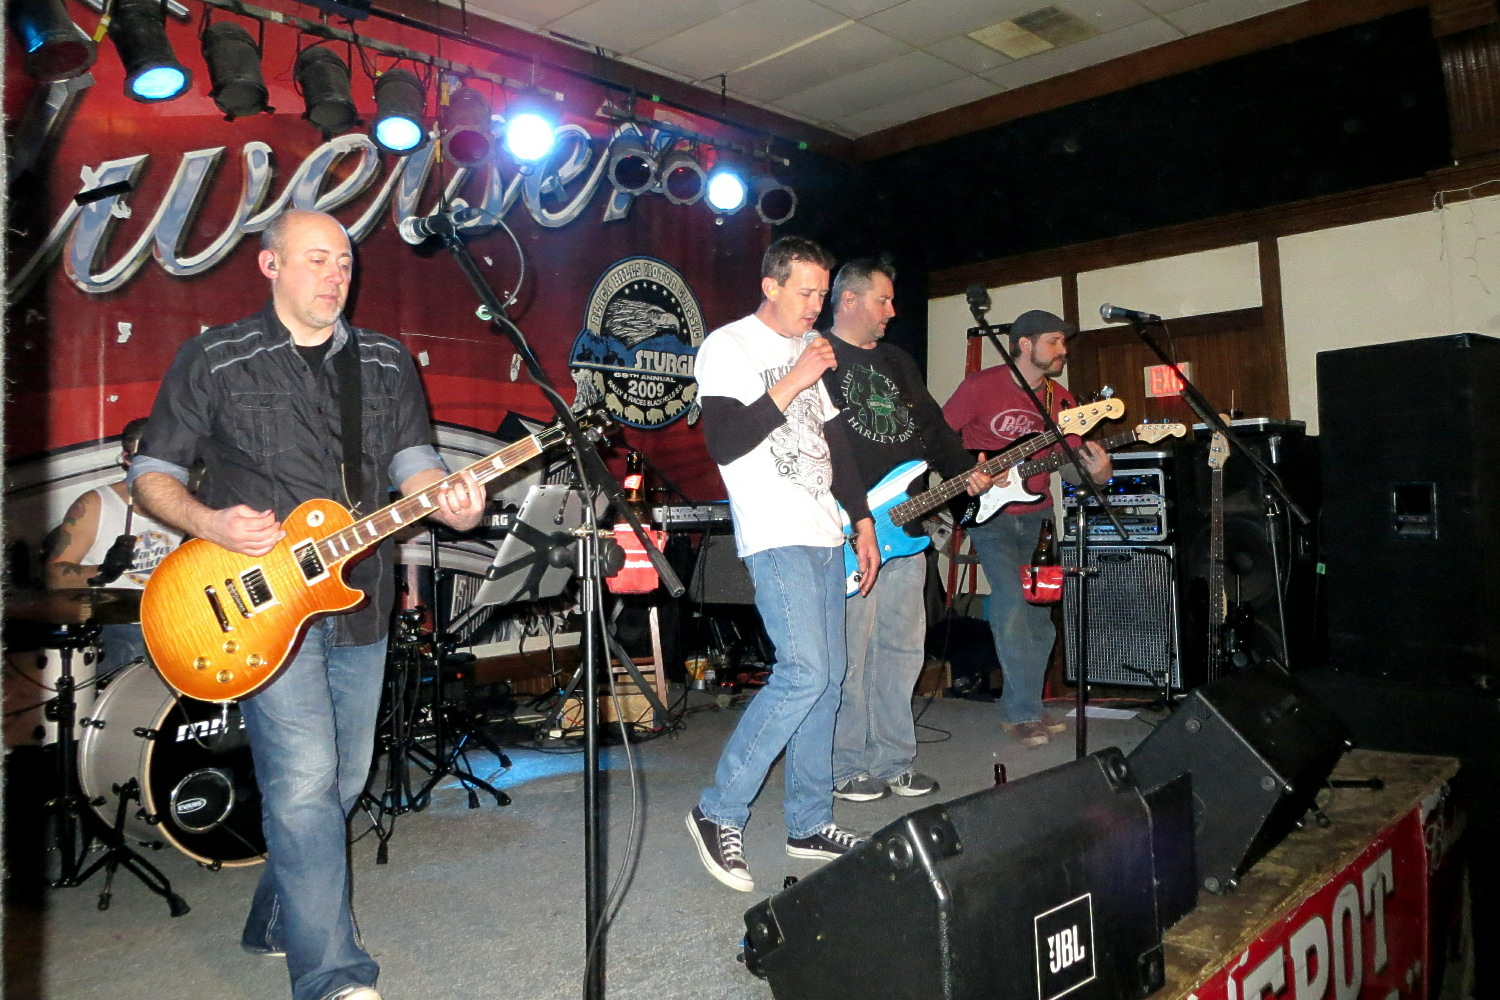 Live Music at The Huddle Lounge in South Sioux City, Nebraska  - 